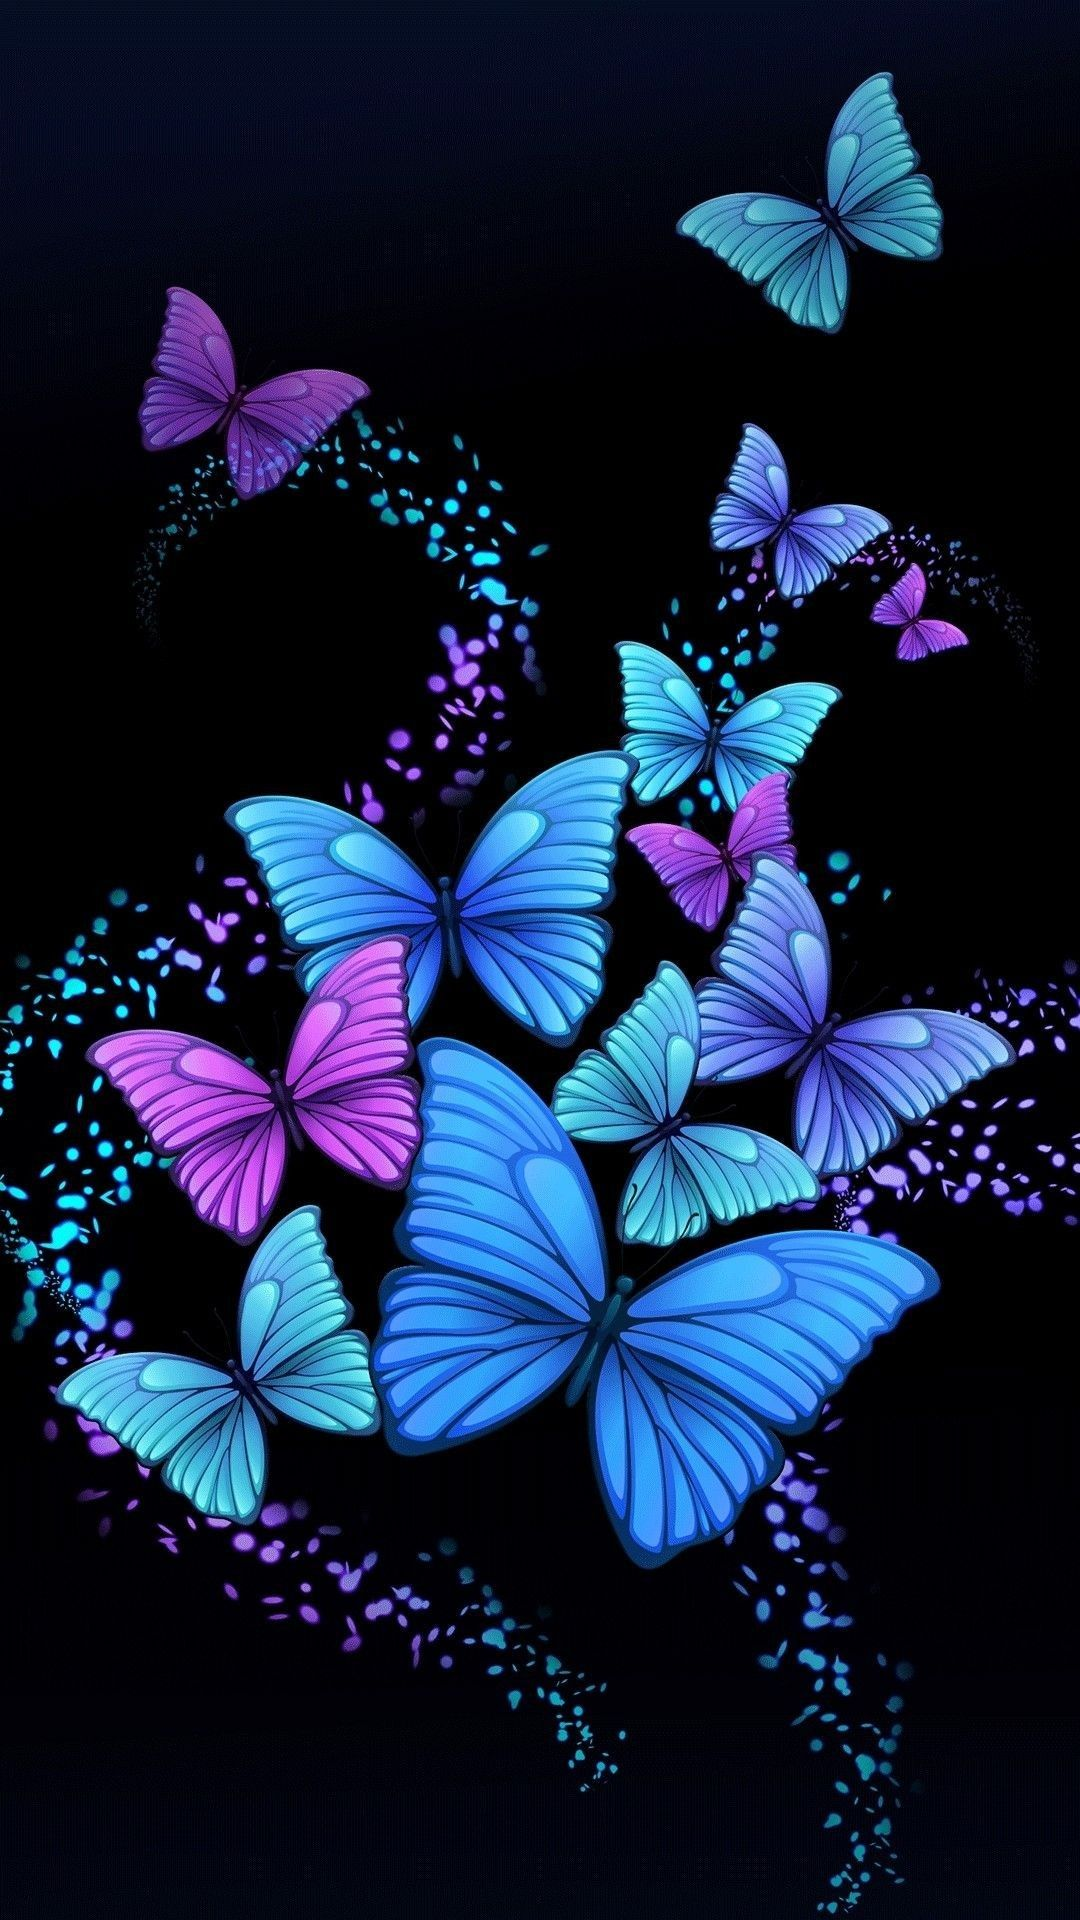 Pin by TRISHA ROBIN on BUTTYFLIES | Pinterest | Butterfly, Wallpaper and Wallpaper backgrounds